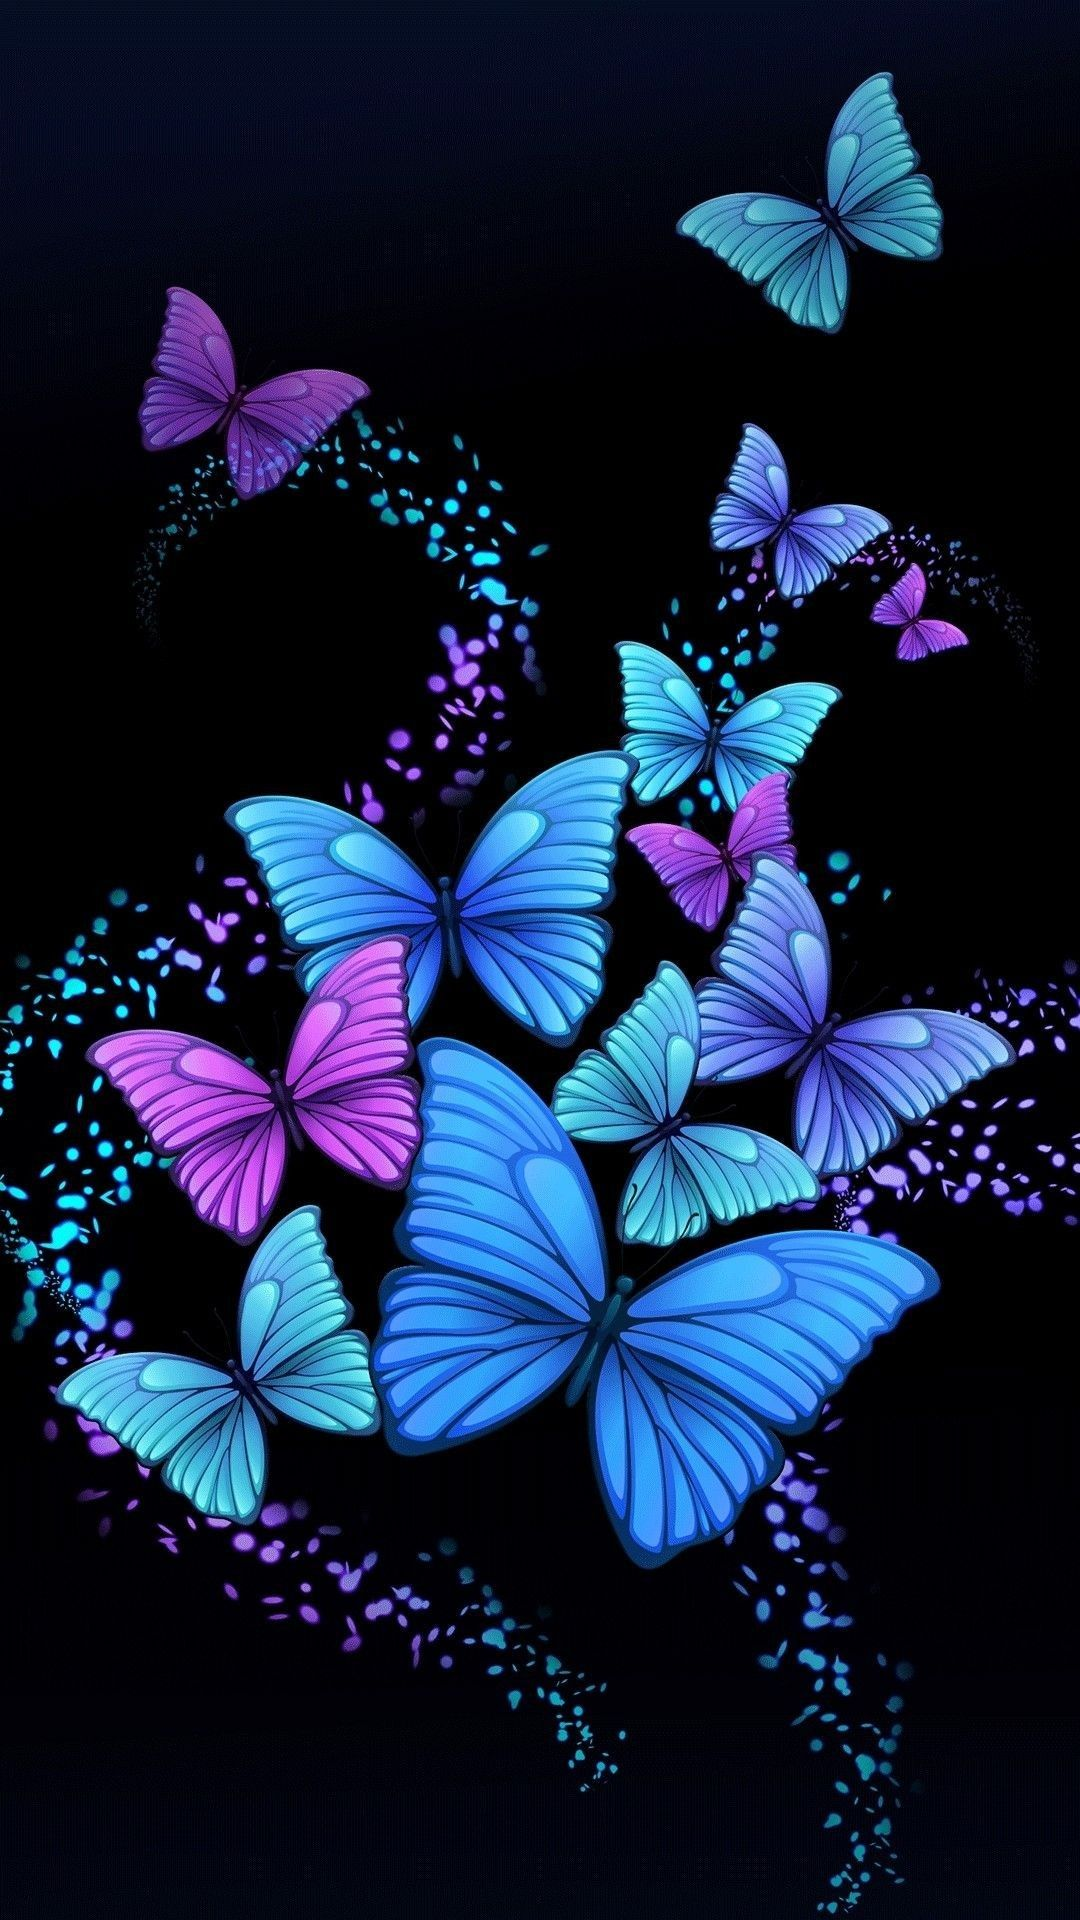 Pin by TRISHA ROBIN on BUTTYFLIES | Pinterest | Butterfly, Wallpaper and Wallpaper backgrounds